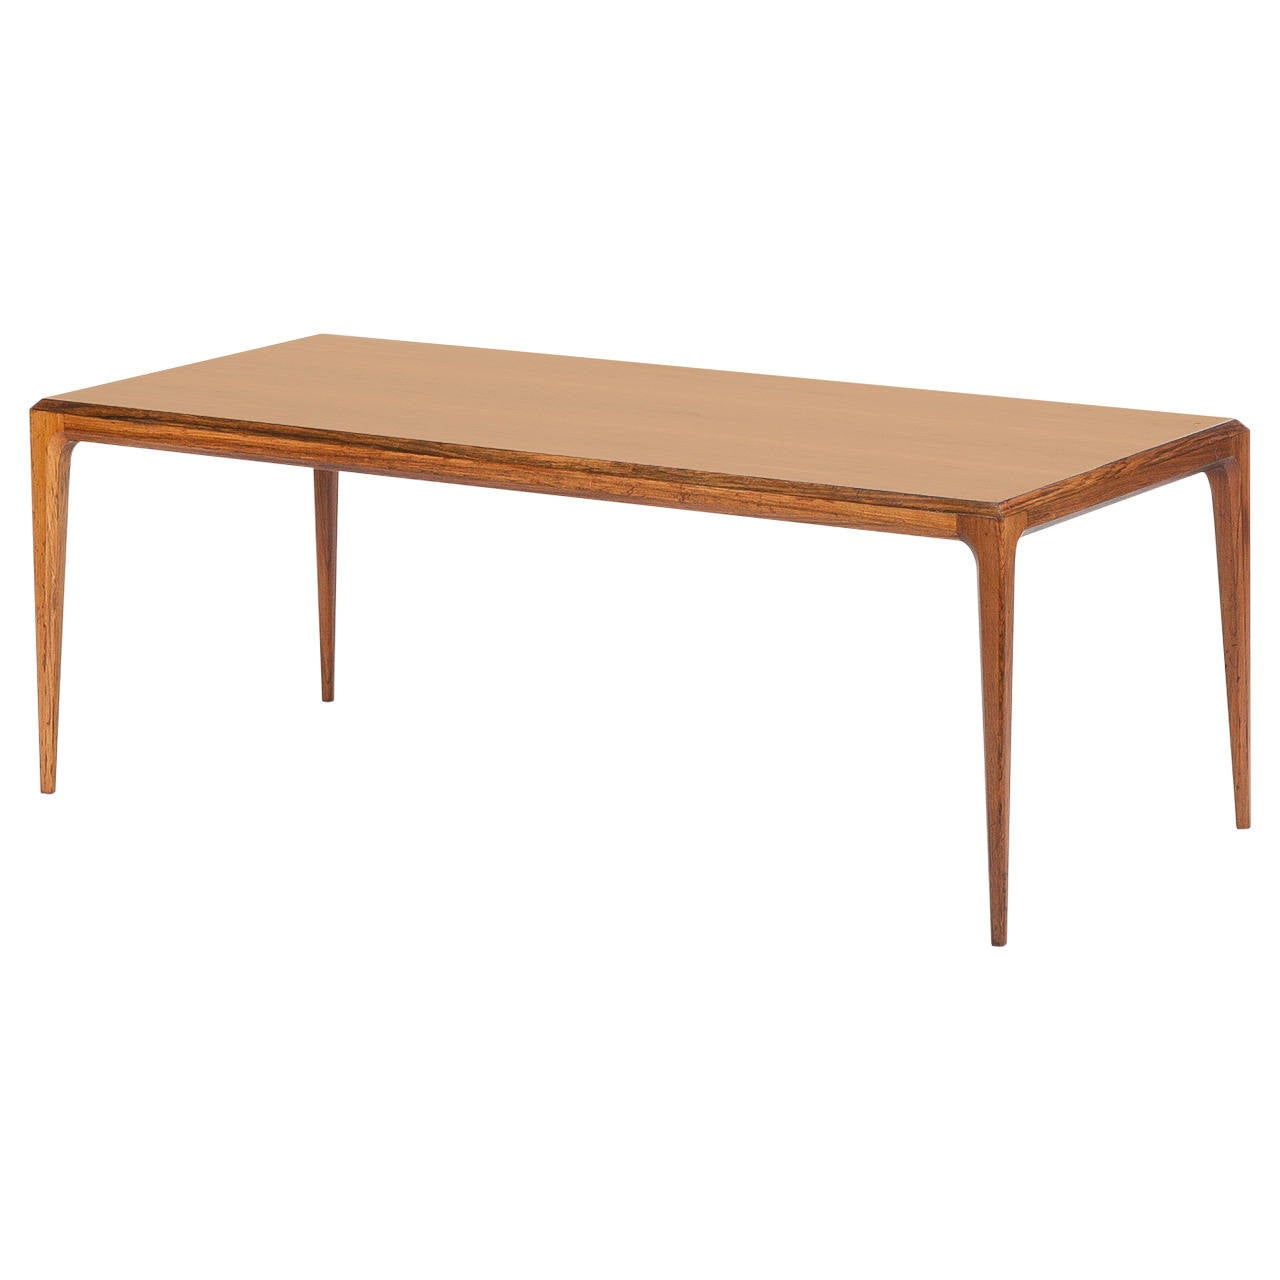 Danish Rosewood Coffee Table by Johannes Andersen Silkeborg, 1960s